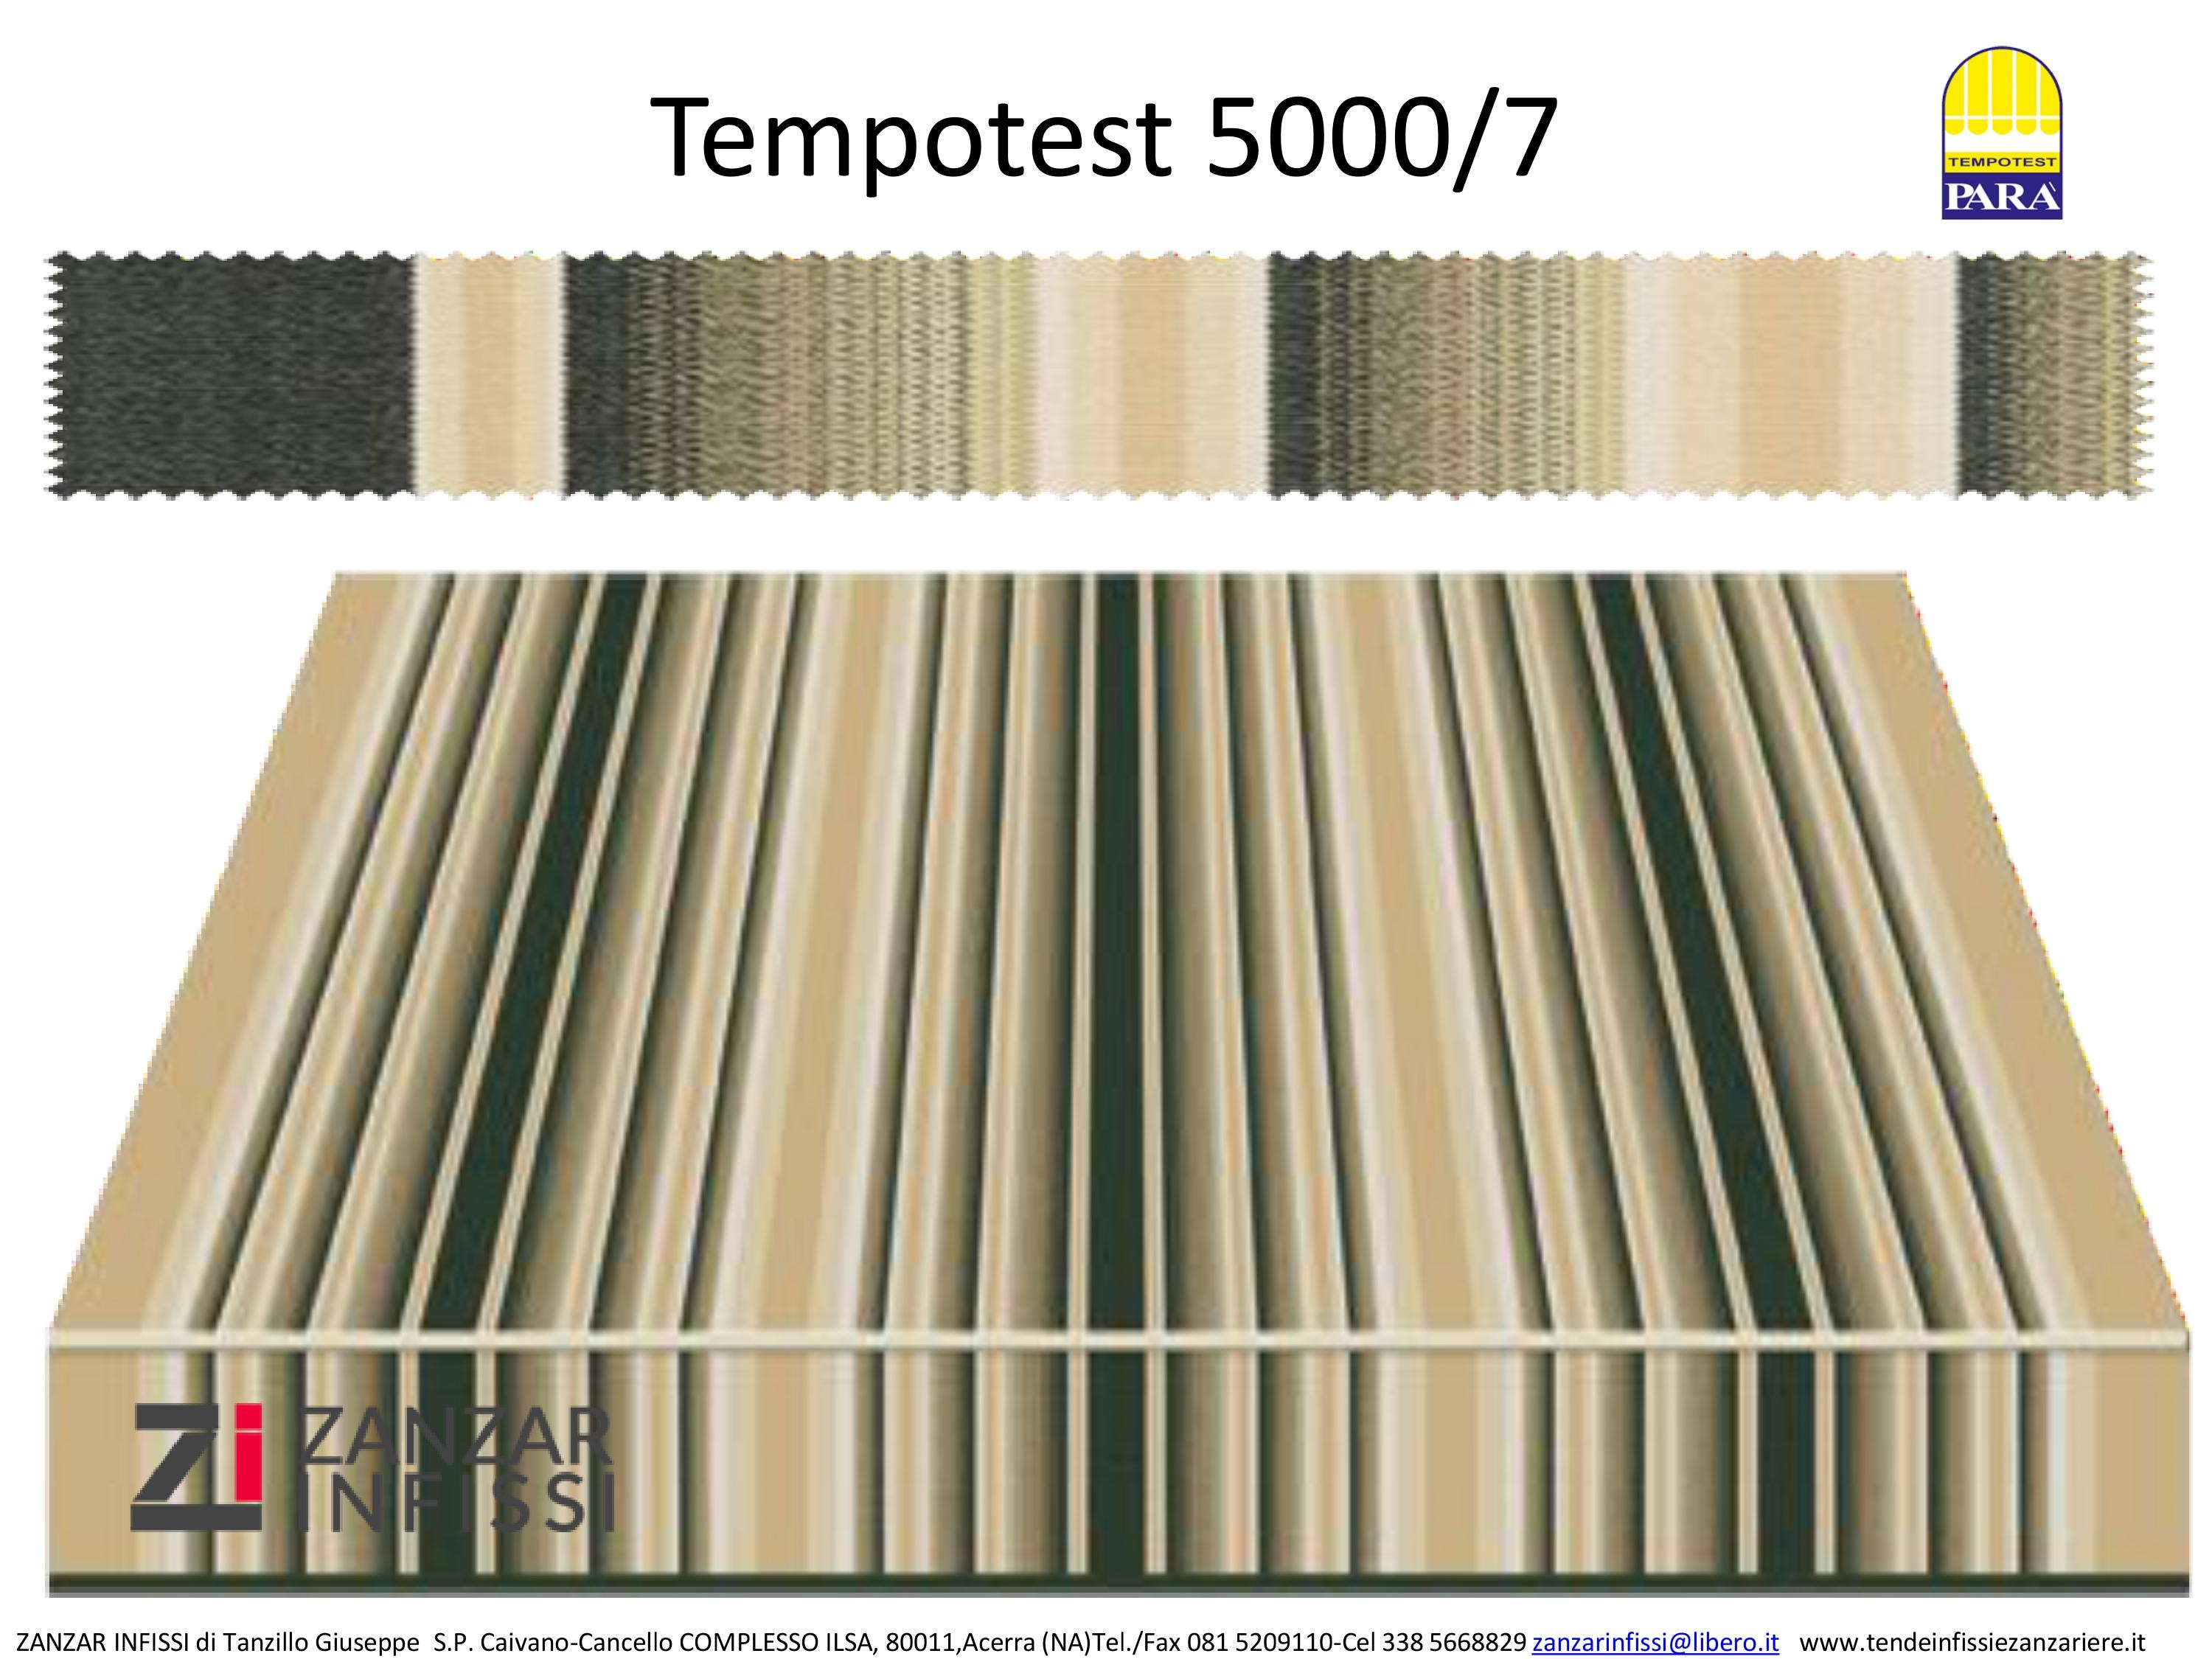 Tempotest 5000/7